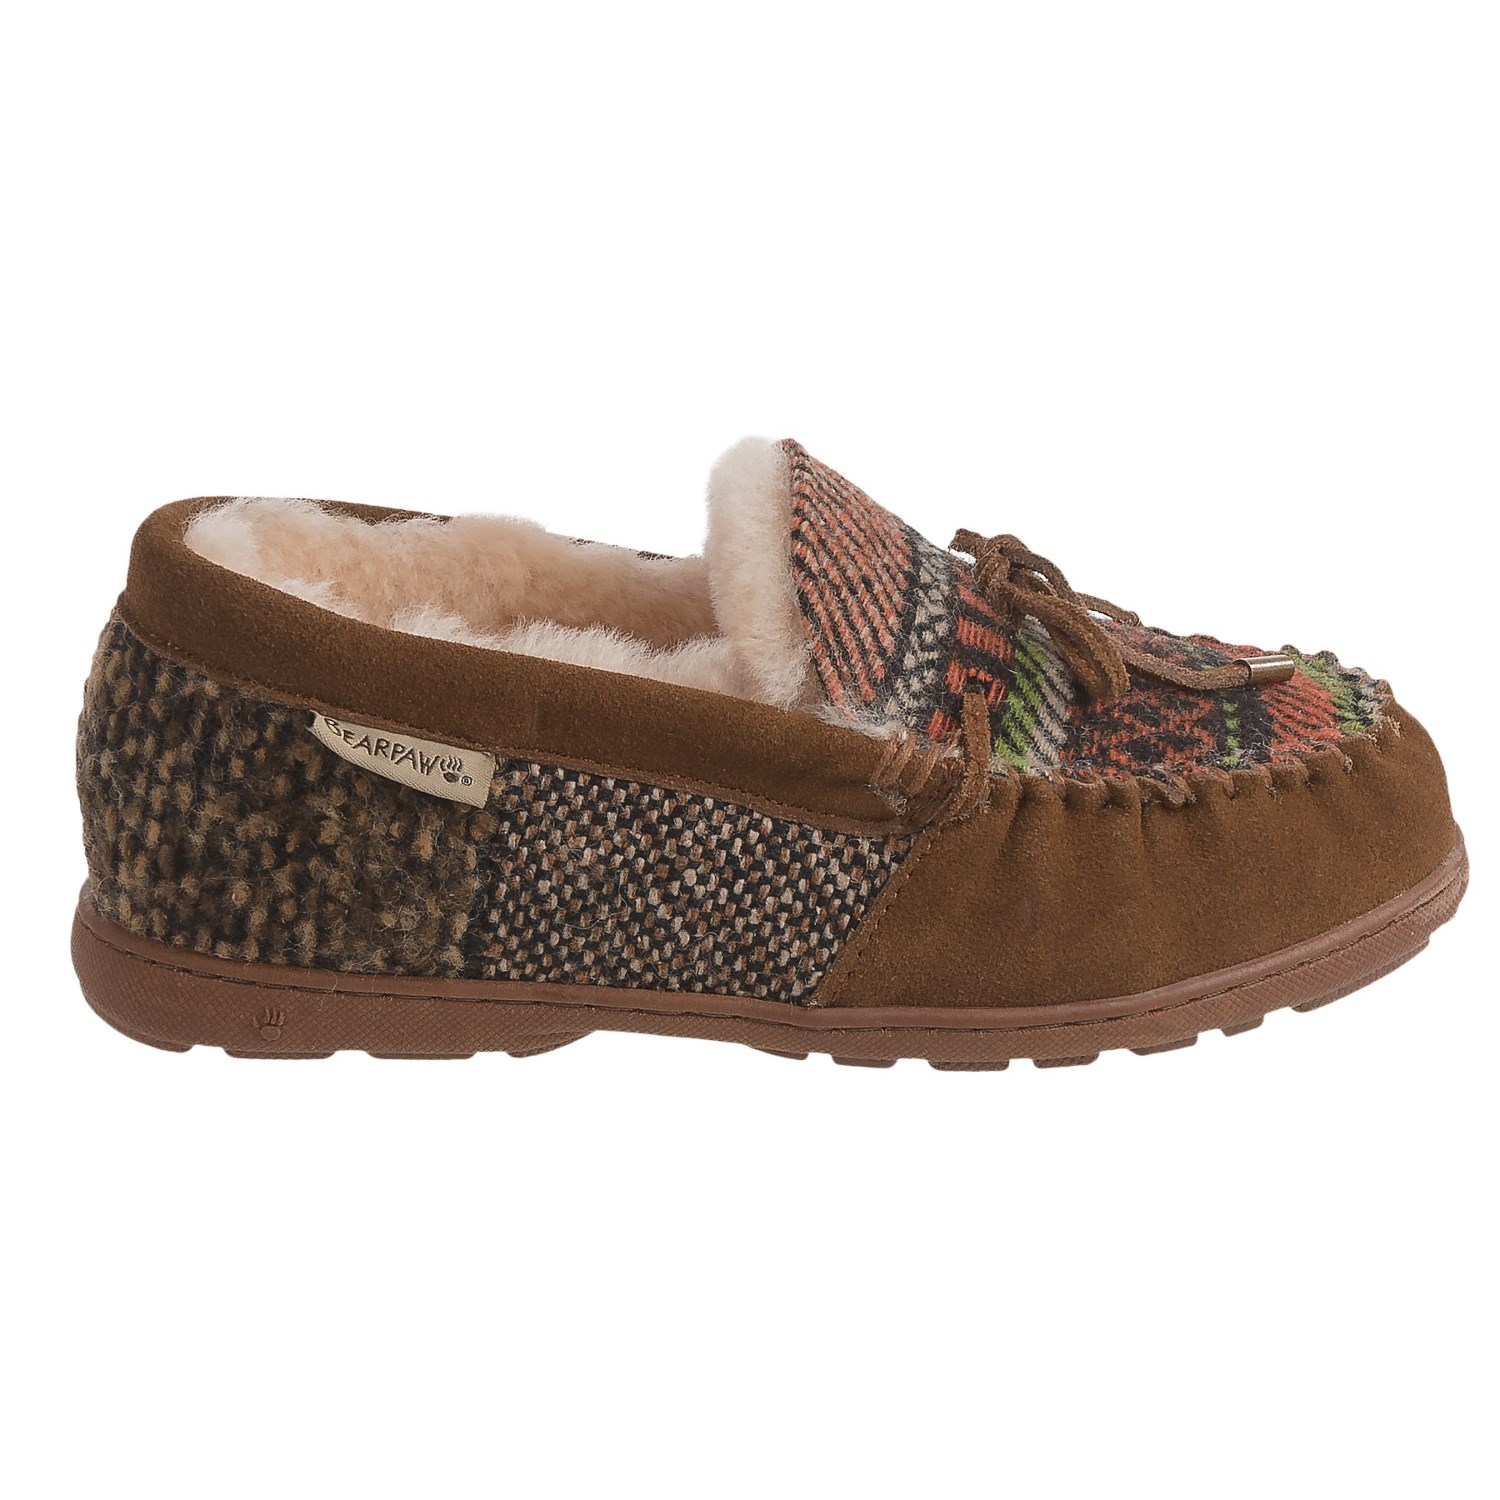 cdccf61956d6 Bearpaw Mindy Slippers (For Women) - Save 59%